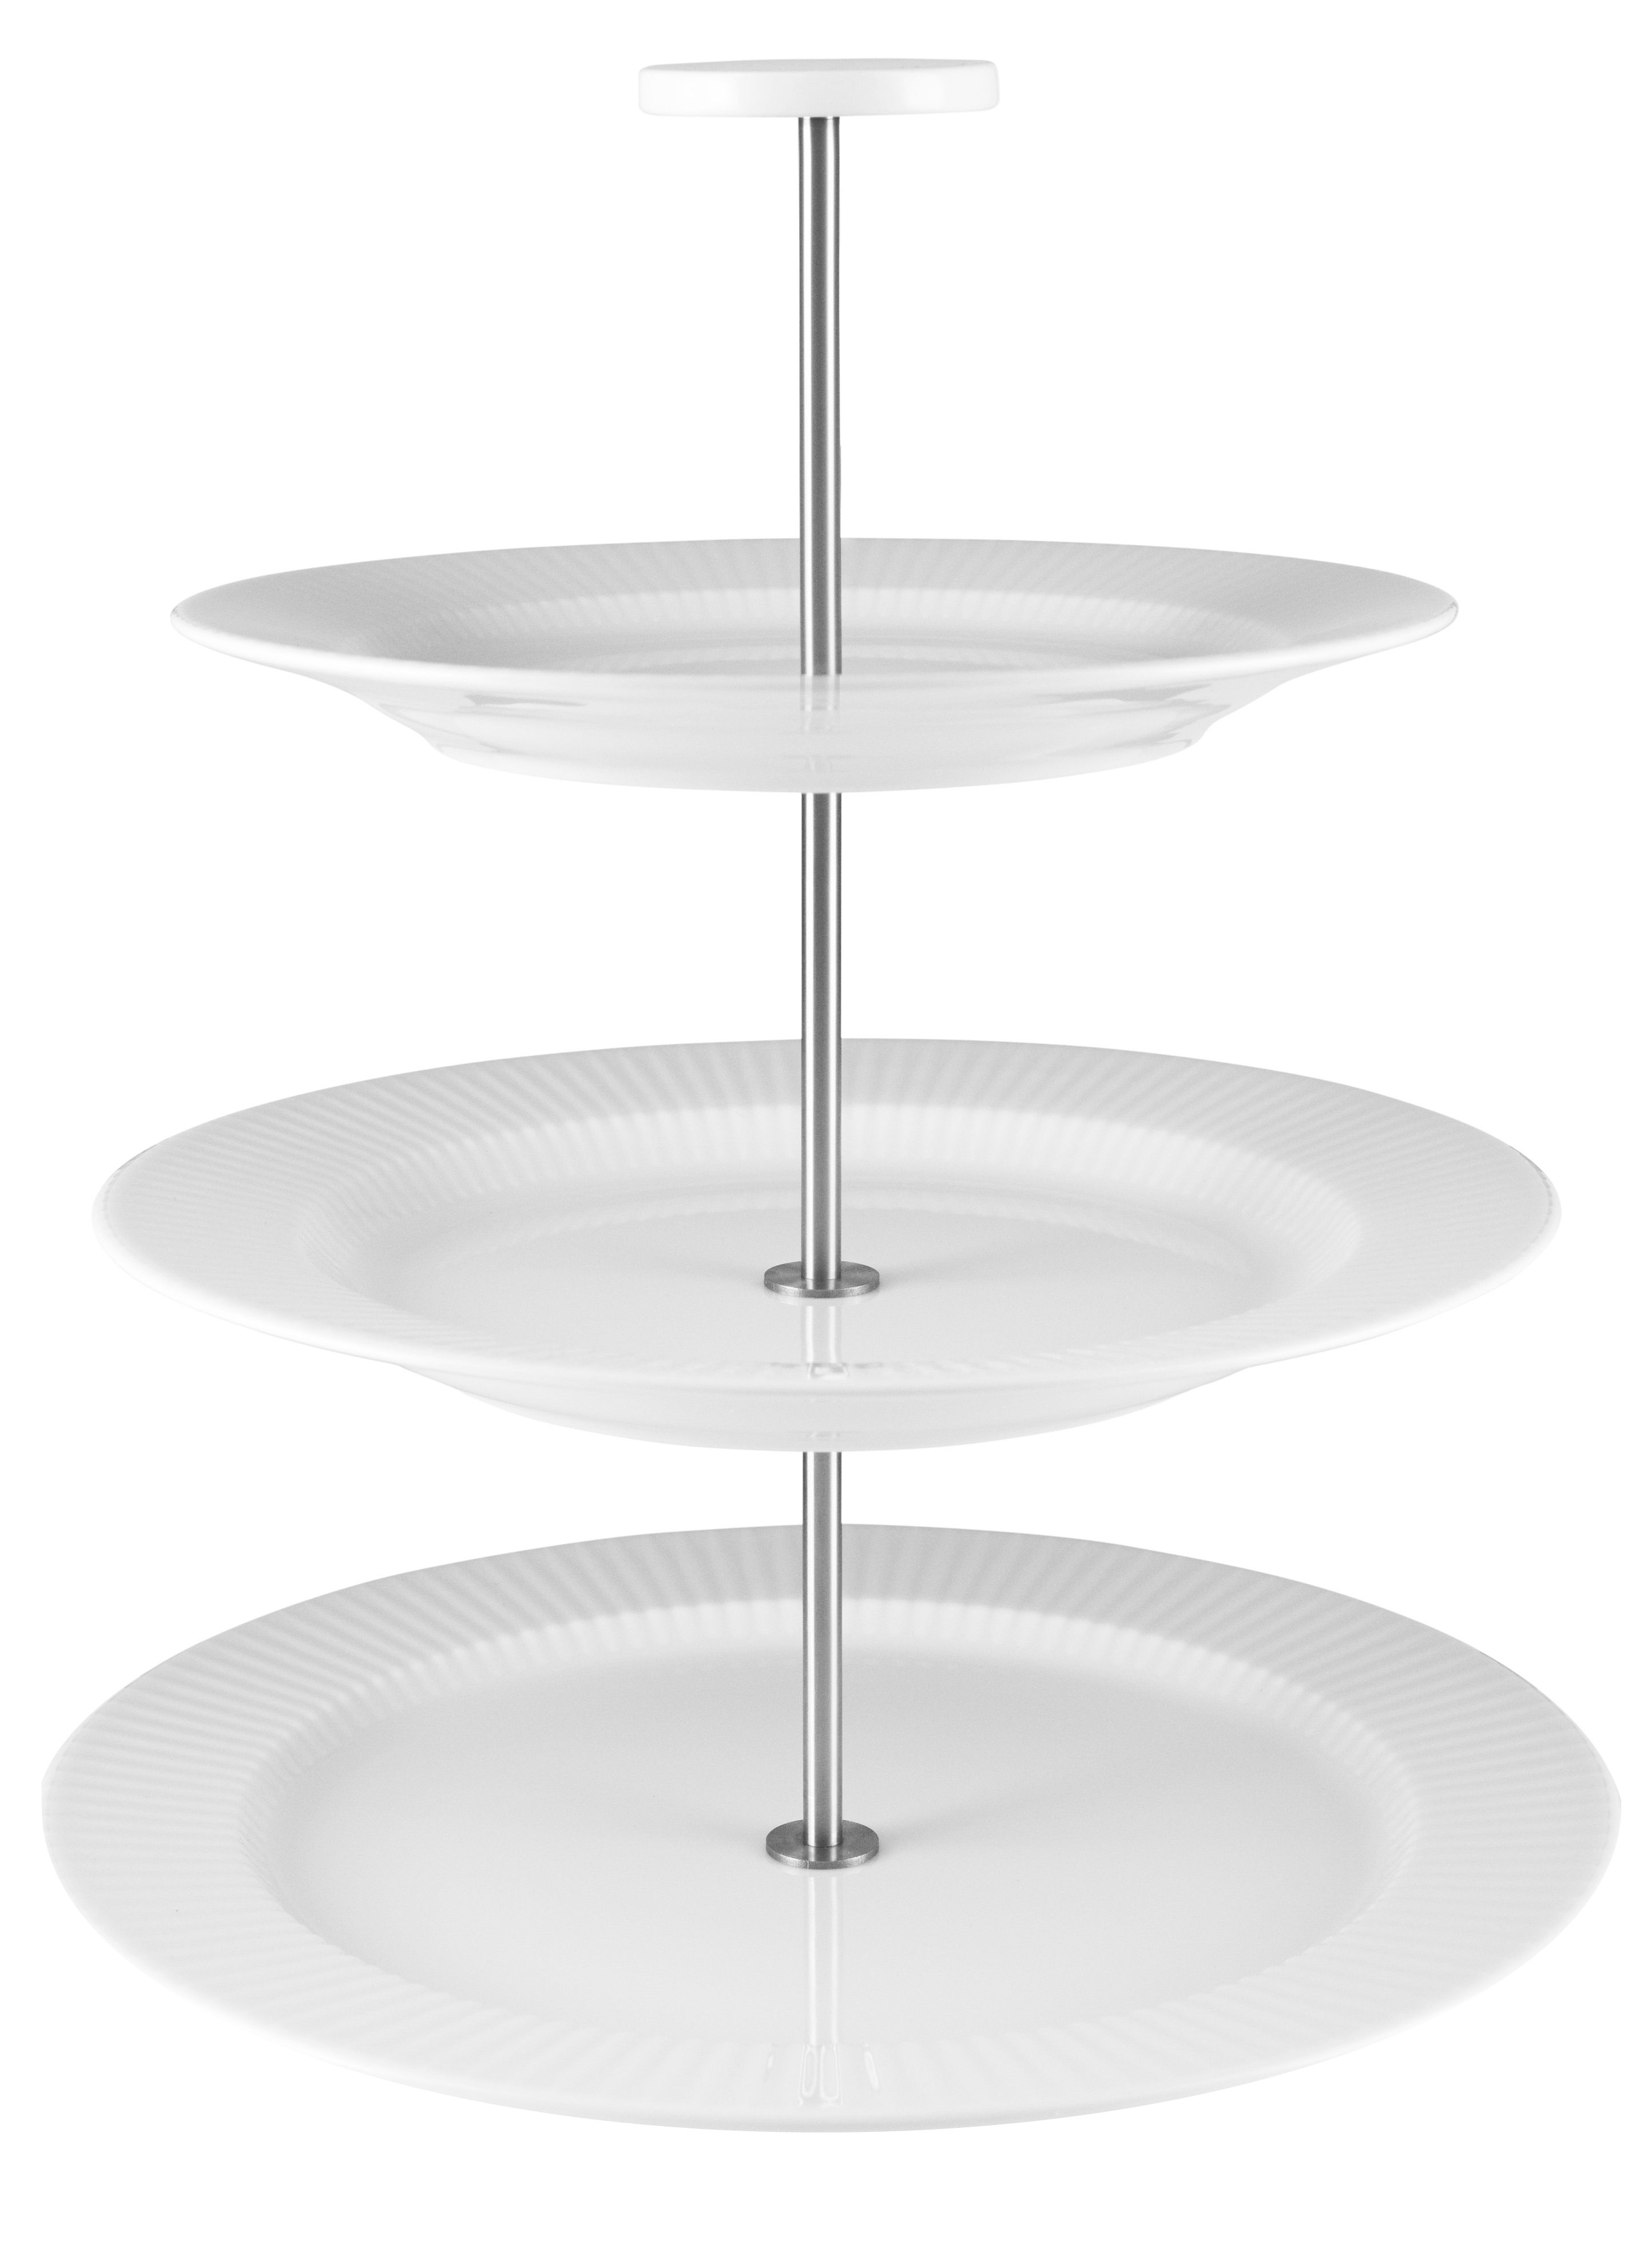 Tableware - Serving Plates - Legio Nova Presentation dish - 3 levels - Porcelain by Eva Trio - White - China, Stainless steel